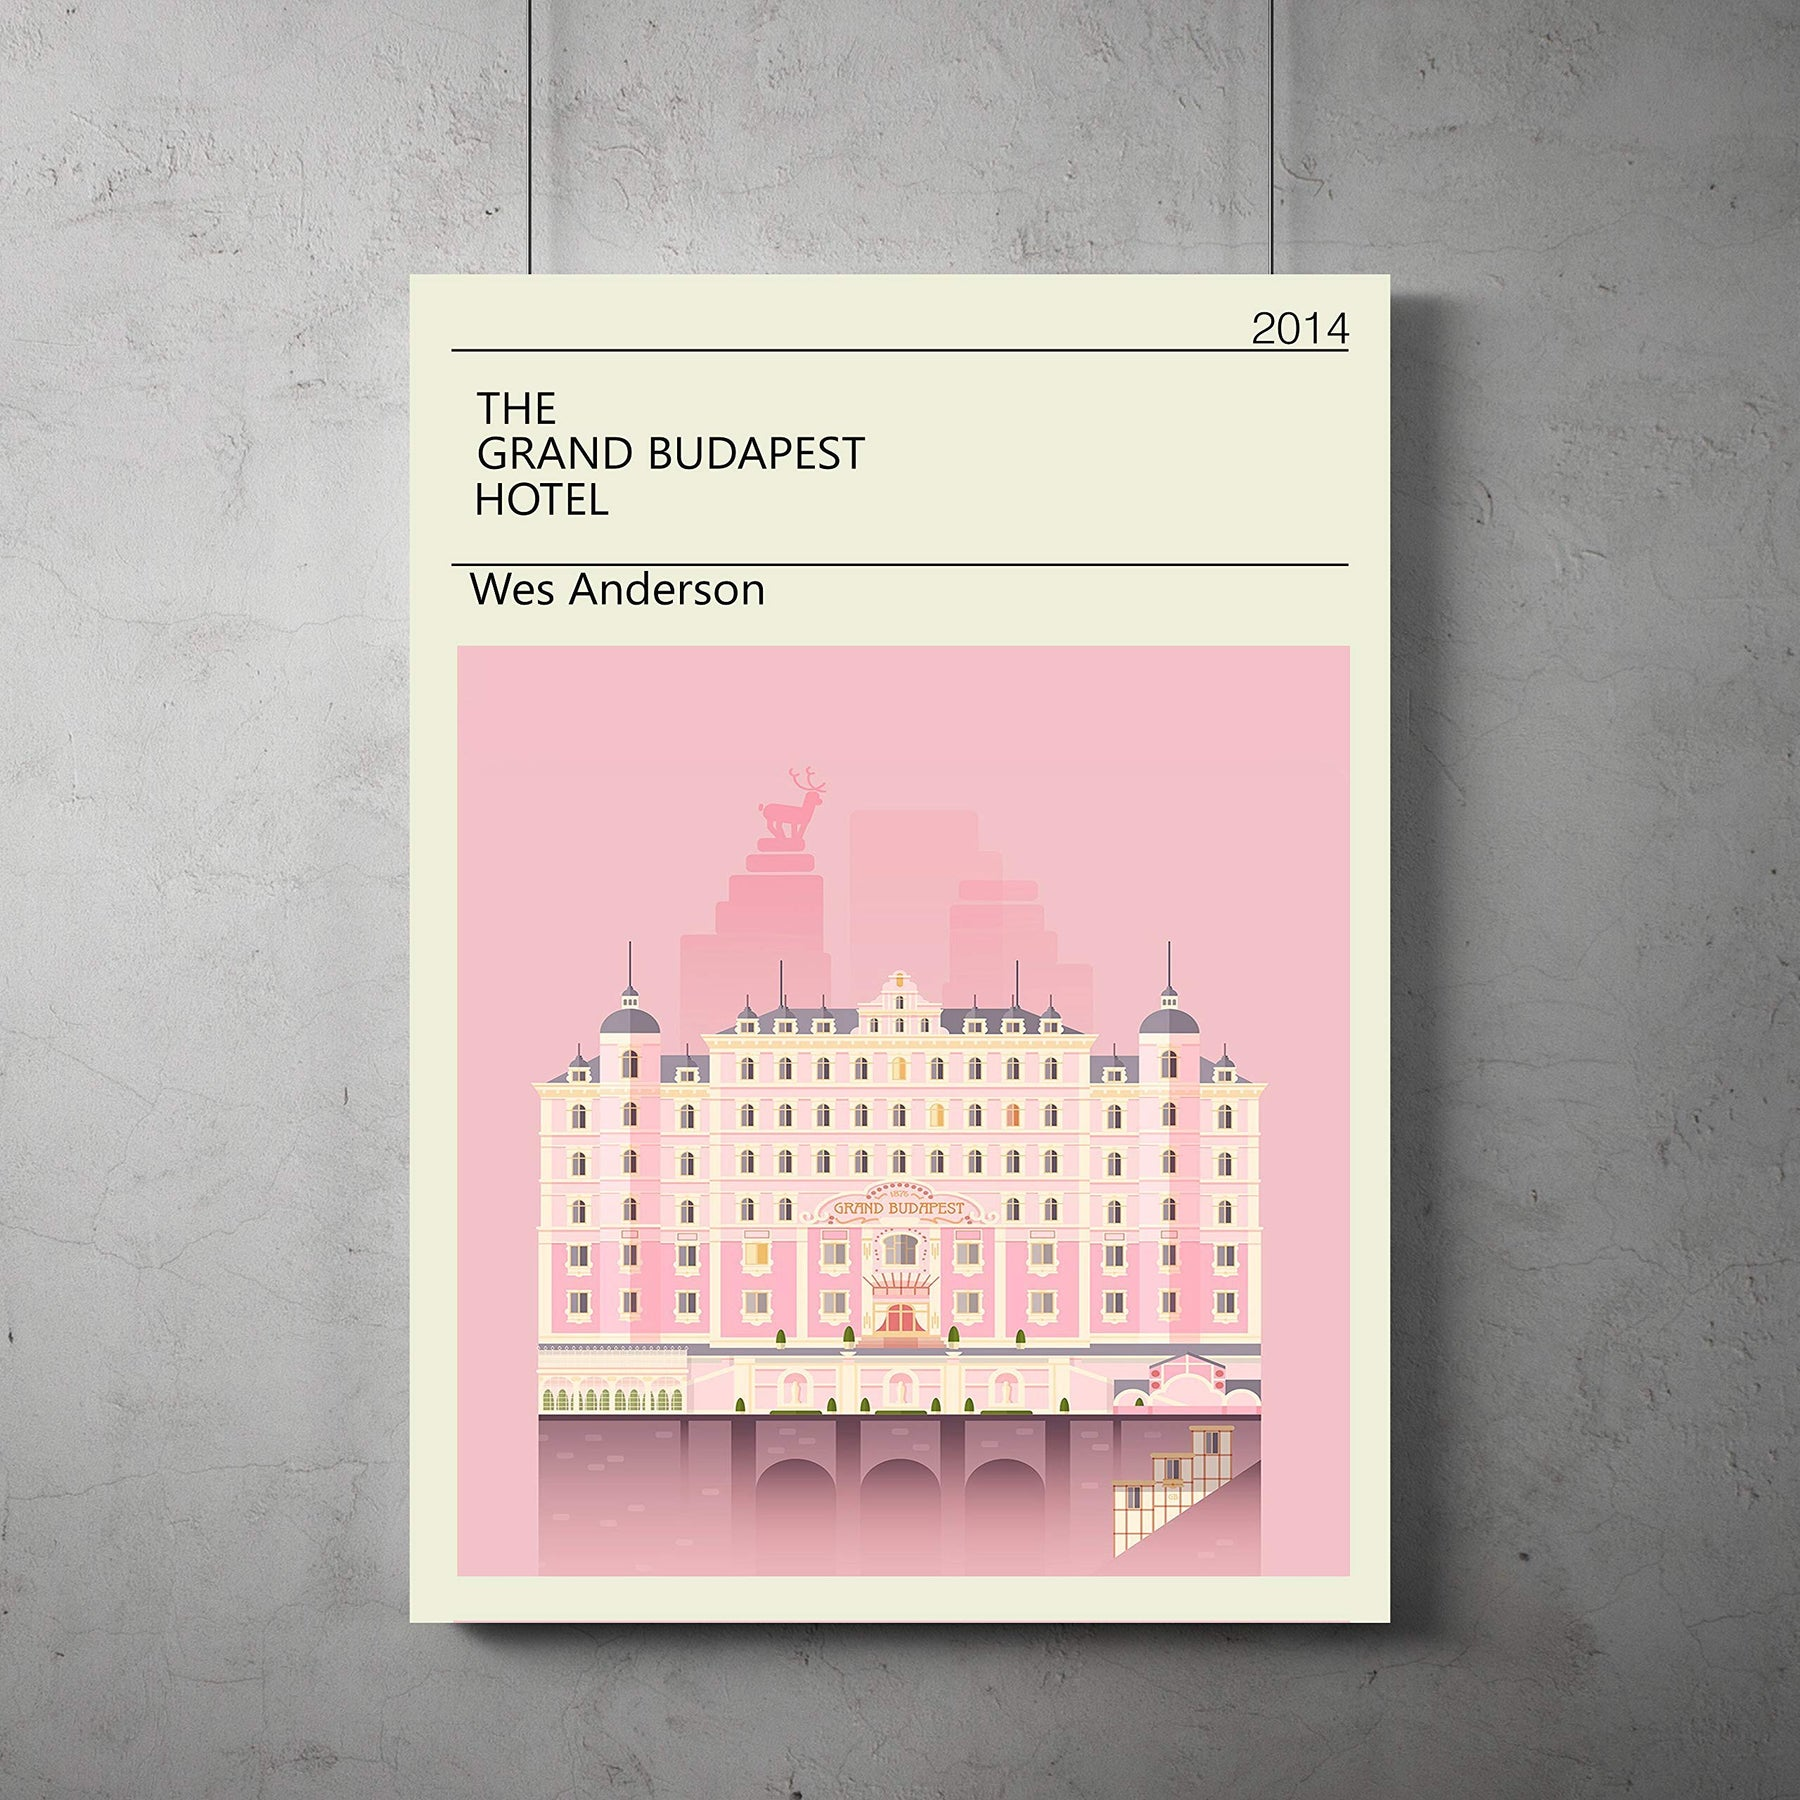 Wes Anderson Coffee Table Book.Grand Budapest Hotel Vintage Poster Grand Budapest Minimalist Print Wes Anderson Art All Prints Avialable In 9 Sizes And 3 Type Of Materials